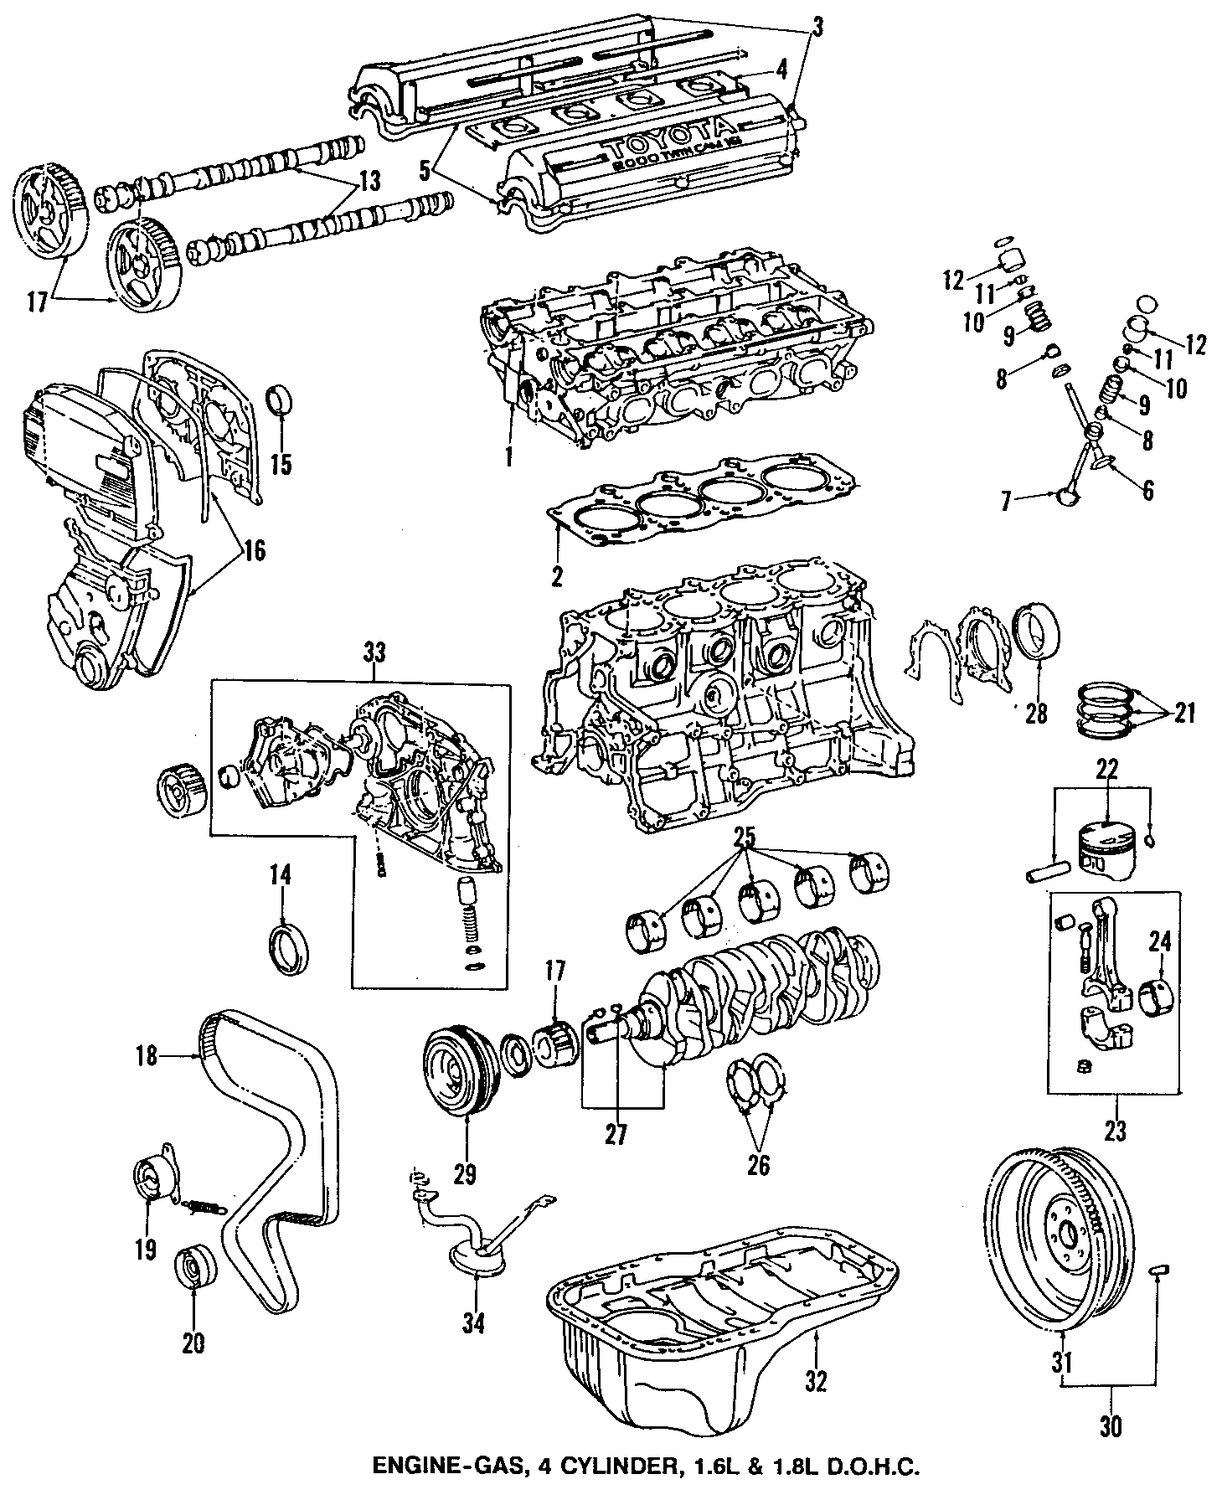 Porsche 997 Fuse Box Location Wiring Diagram And Engine 2006 Radiator Besides On Volvo Truck Schemes Dodge Ram 1500